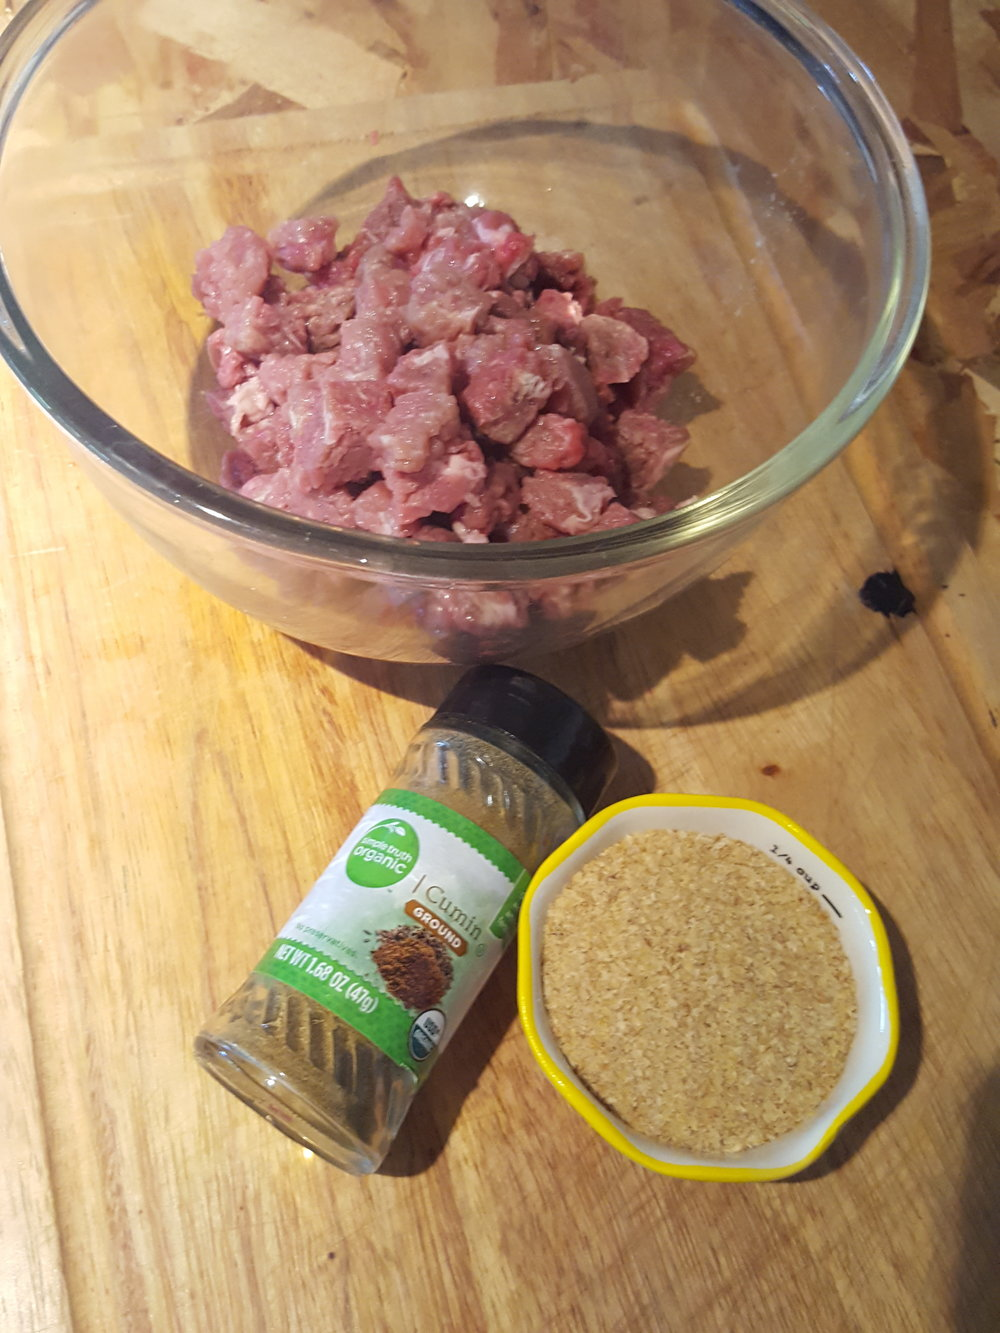 In the Dog Dish: Scrappie Dog Food - a yummy dish out of beef minute steak and fruits and veggies!